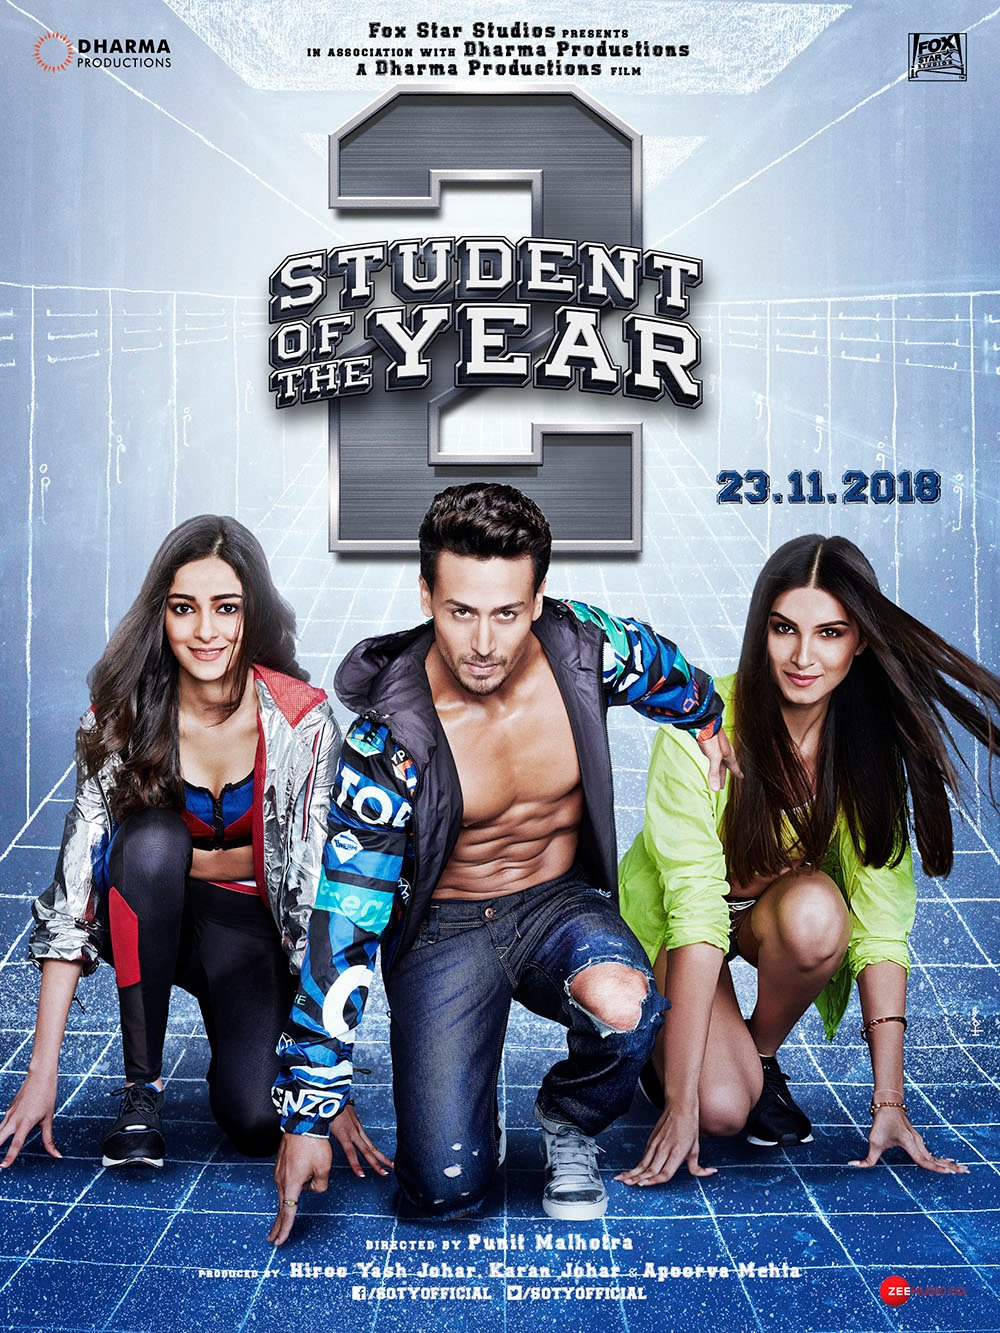 Student of the year 2 - Bollywood movie